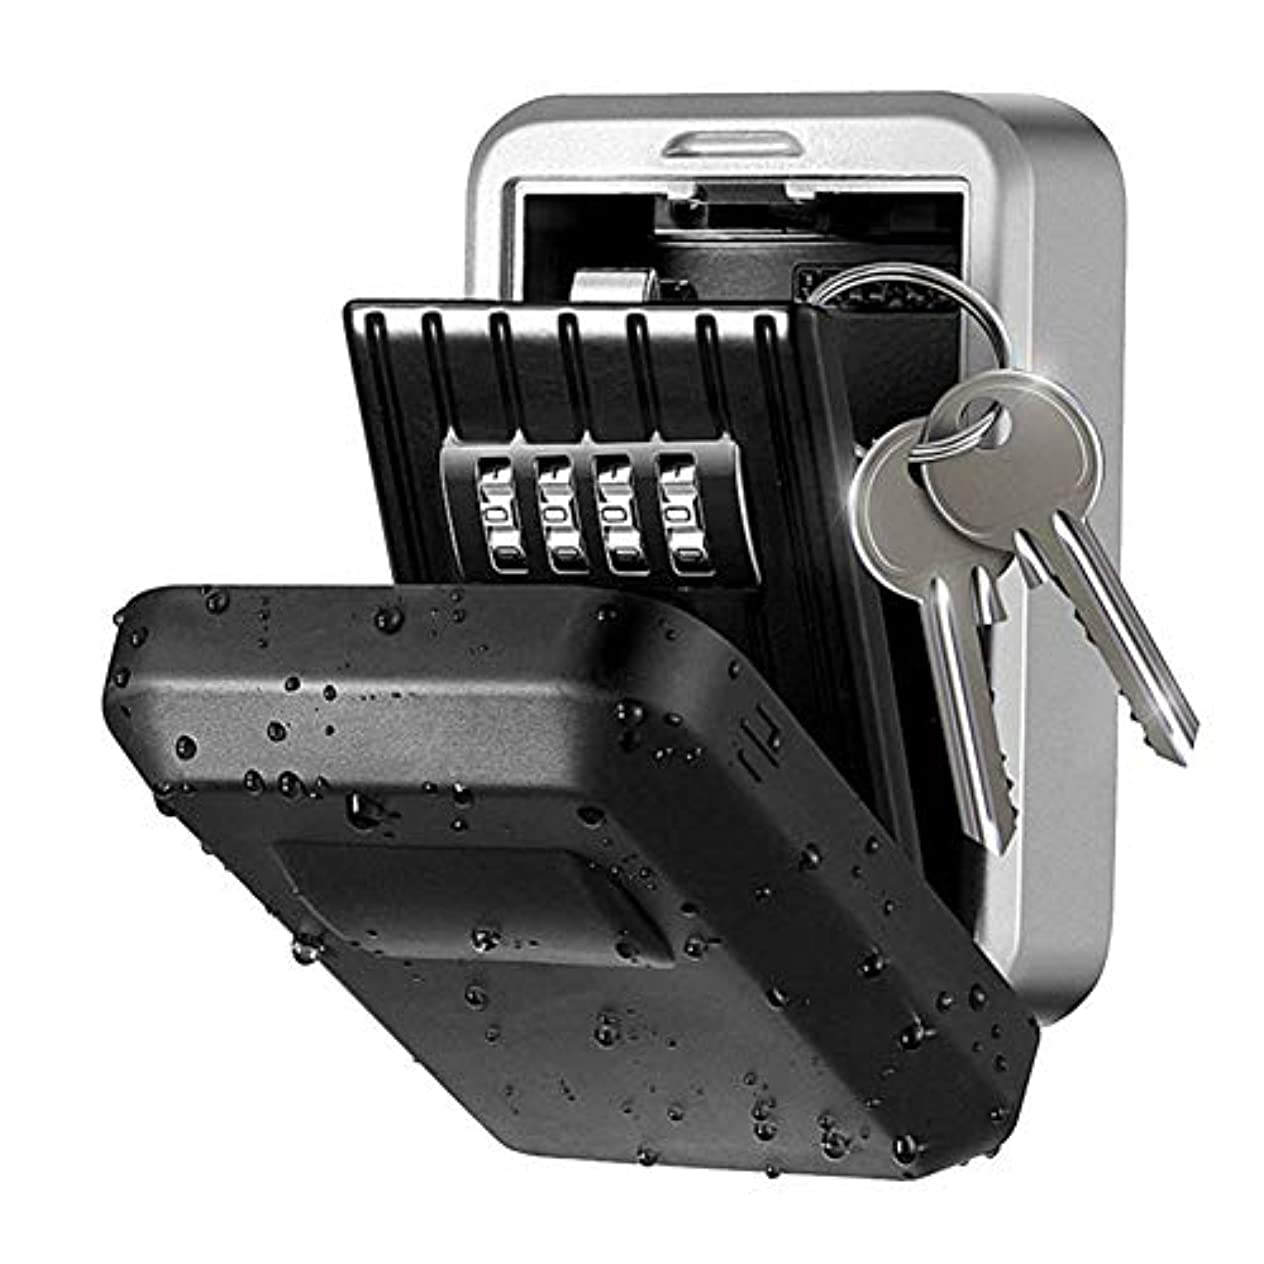 粗い蒸気無関心Key Storage Box,ZOZOE Wall Mount Key Lock Box - Strong, Metal, Outdoors 4 Digit Combination Wall Mount Key Safe...